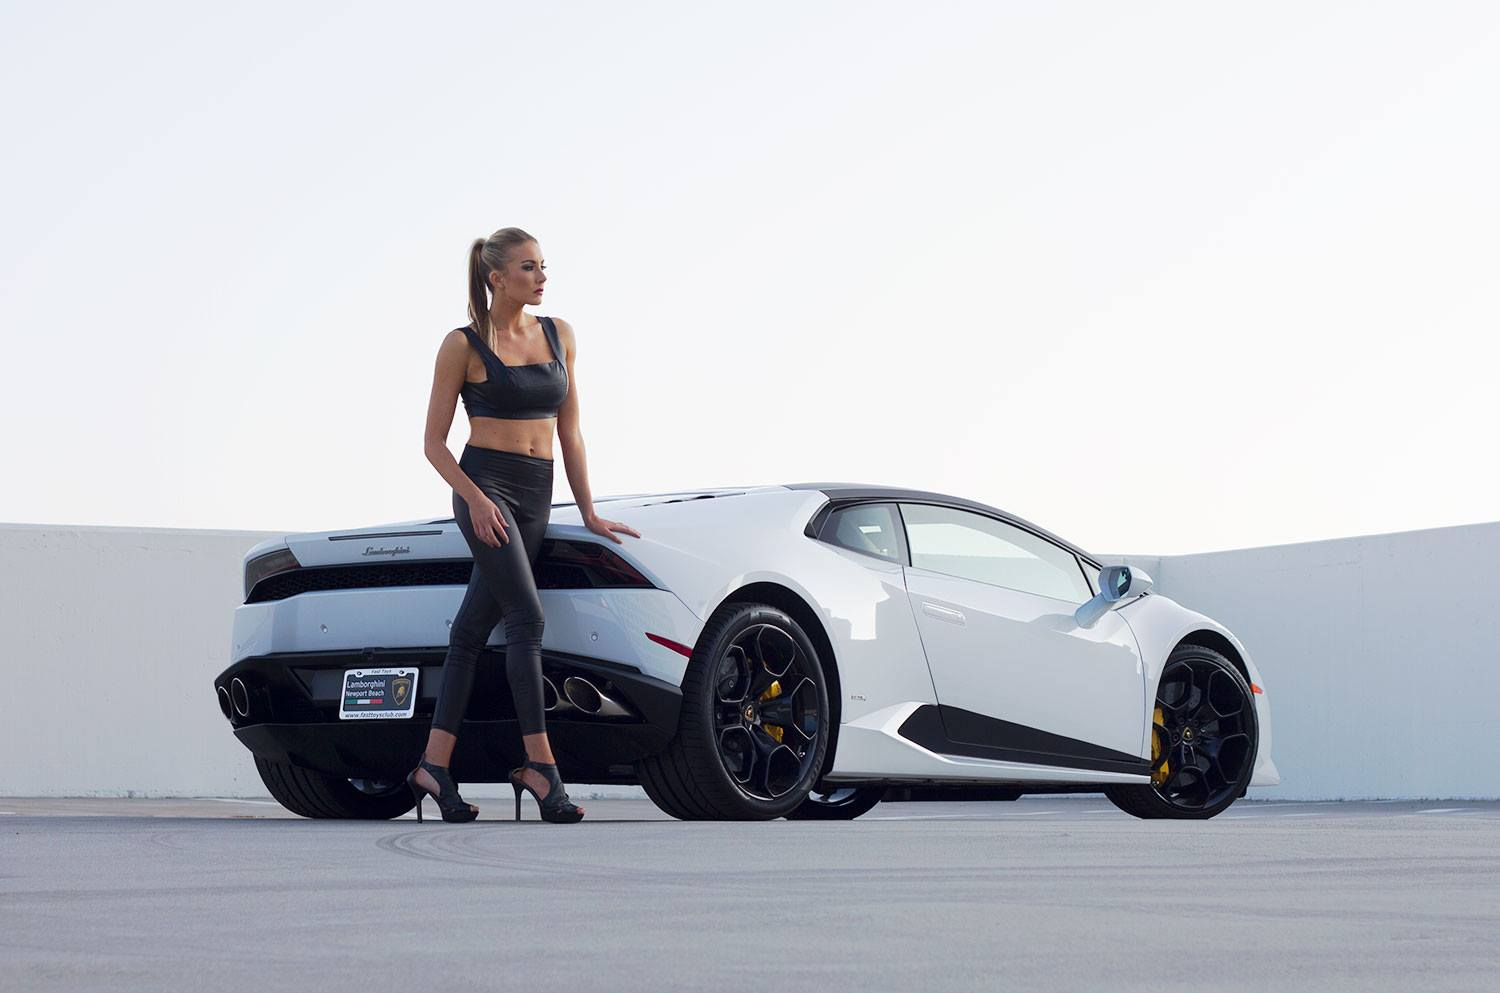 Your Lamborghini Huracan and Blonde Model Fantasy Photos ...